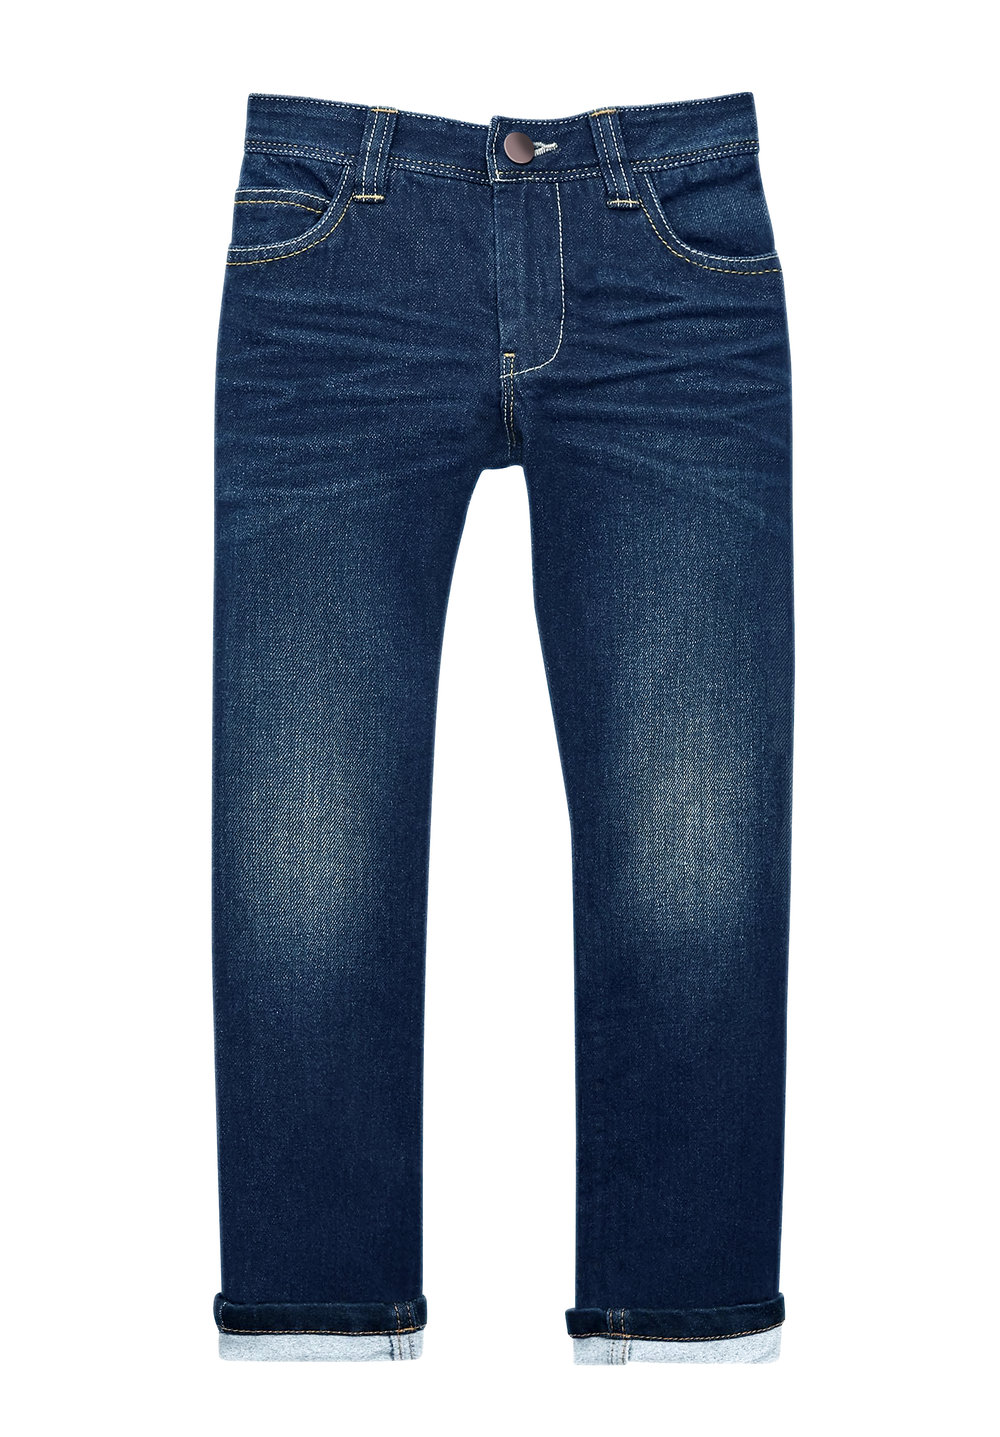 Trousers-isolated-on-white-637211022_2088x3000.jpeg